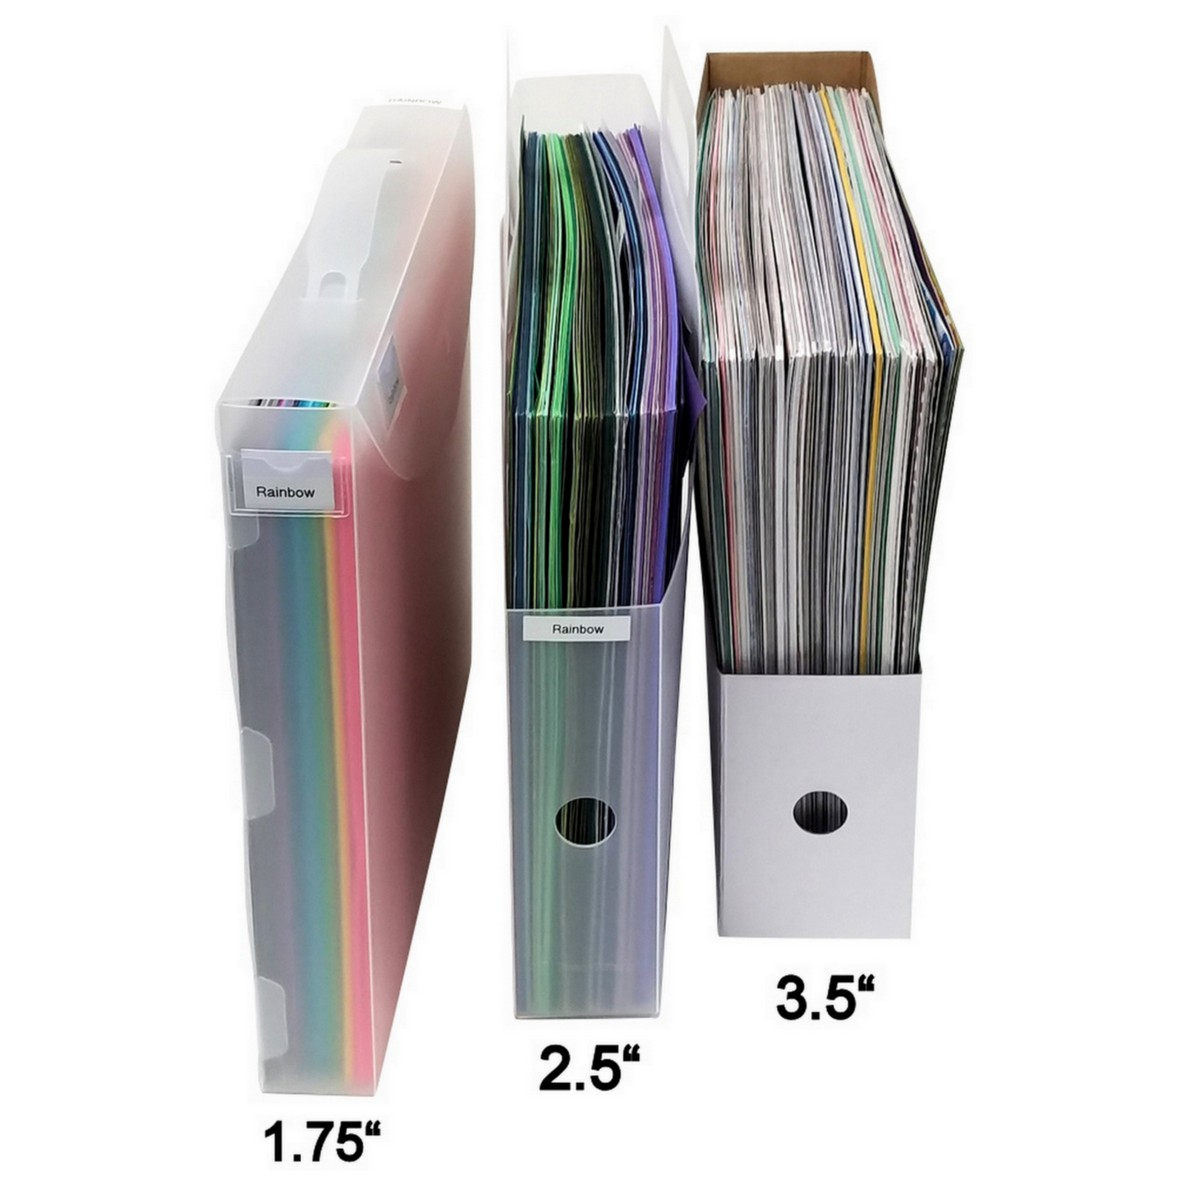 12X12 Paper Organizers with Dimensions A32, XL31, A26